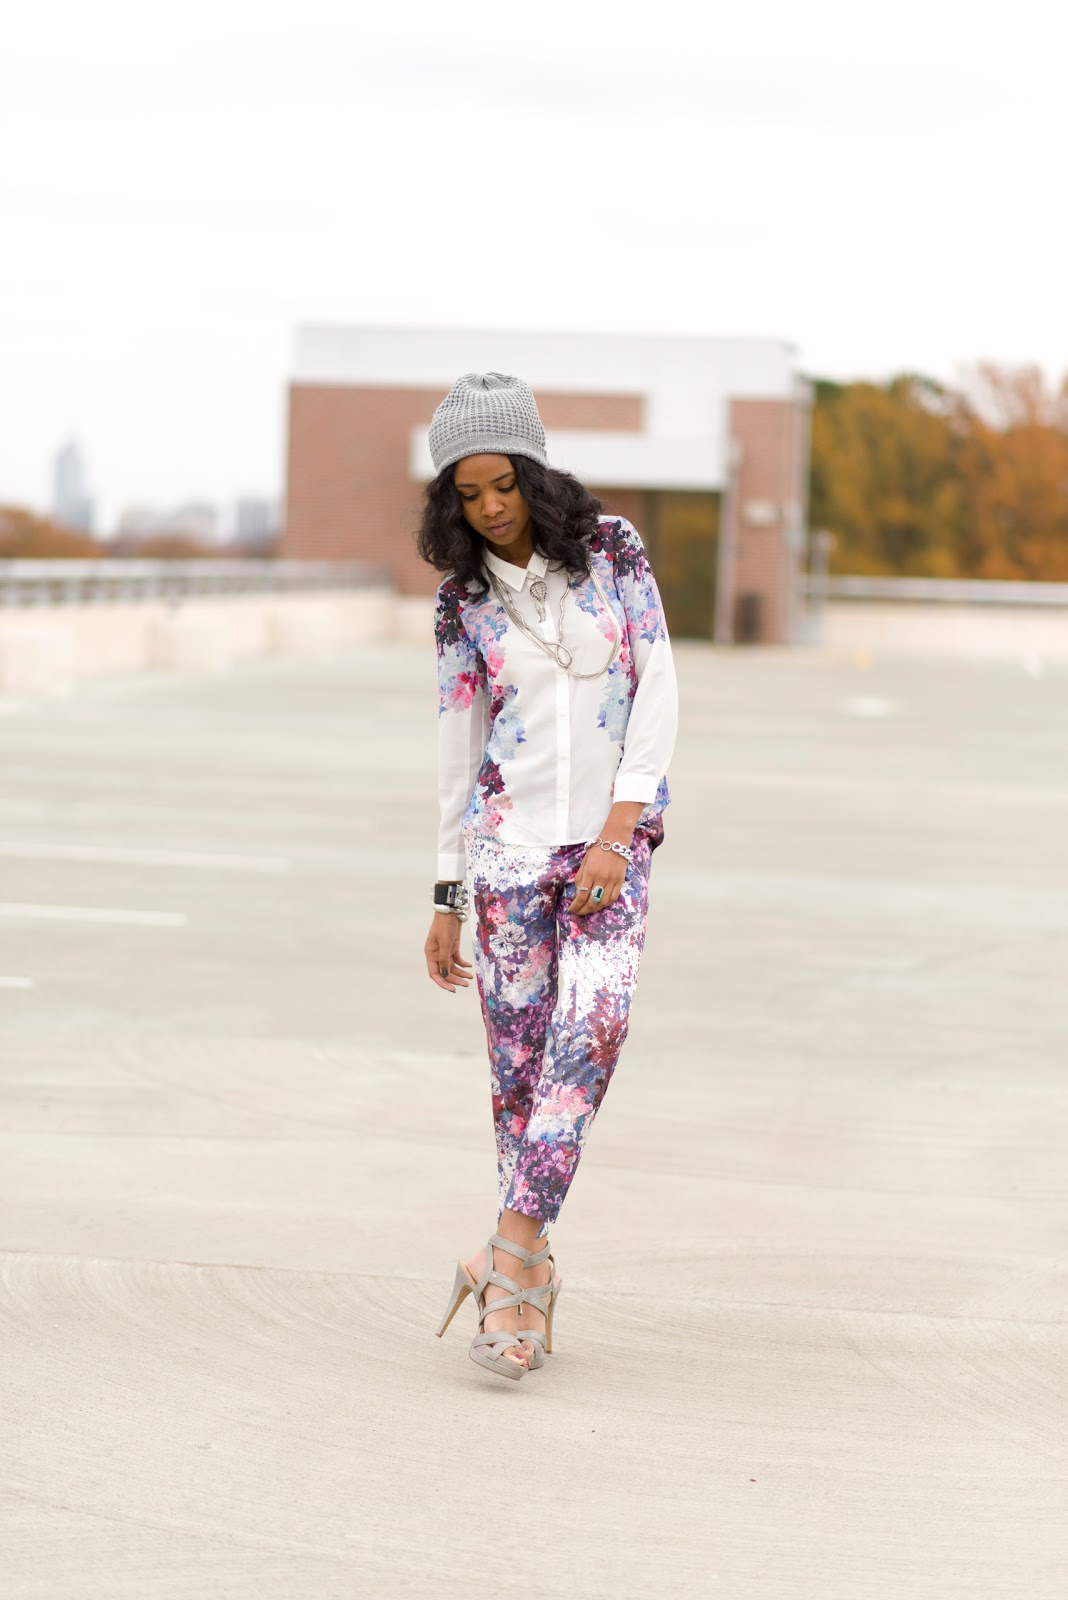 Jazsalyn is a Fashion design student at North Carolina State University and she's wearing a beautiful floral combination of pants and shirt with discrete silver accessories and grey heel sandals